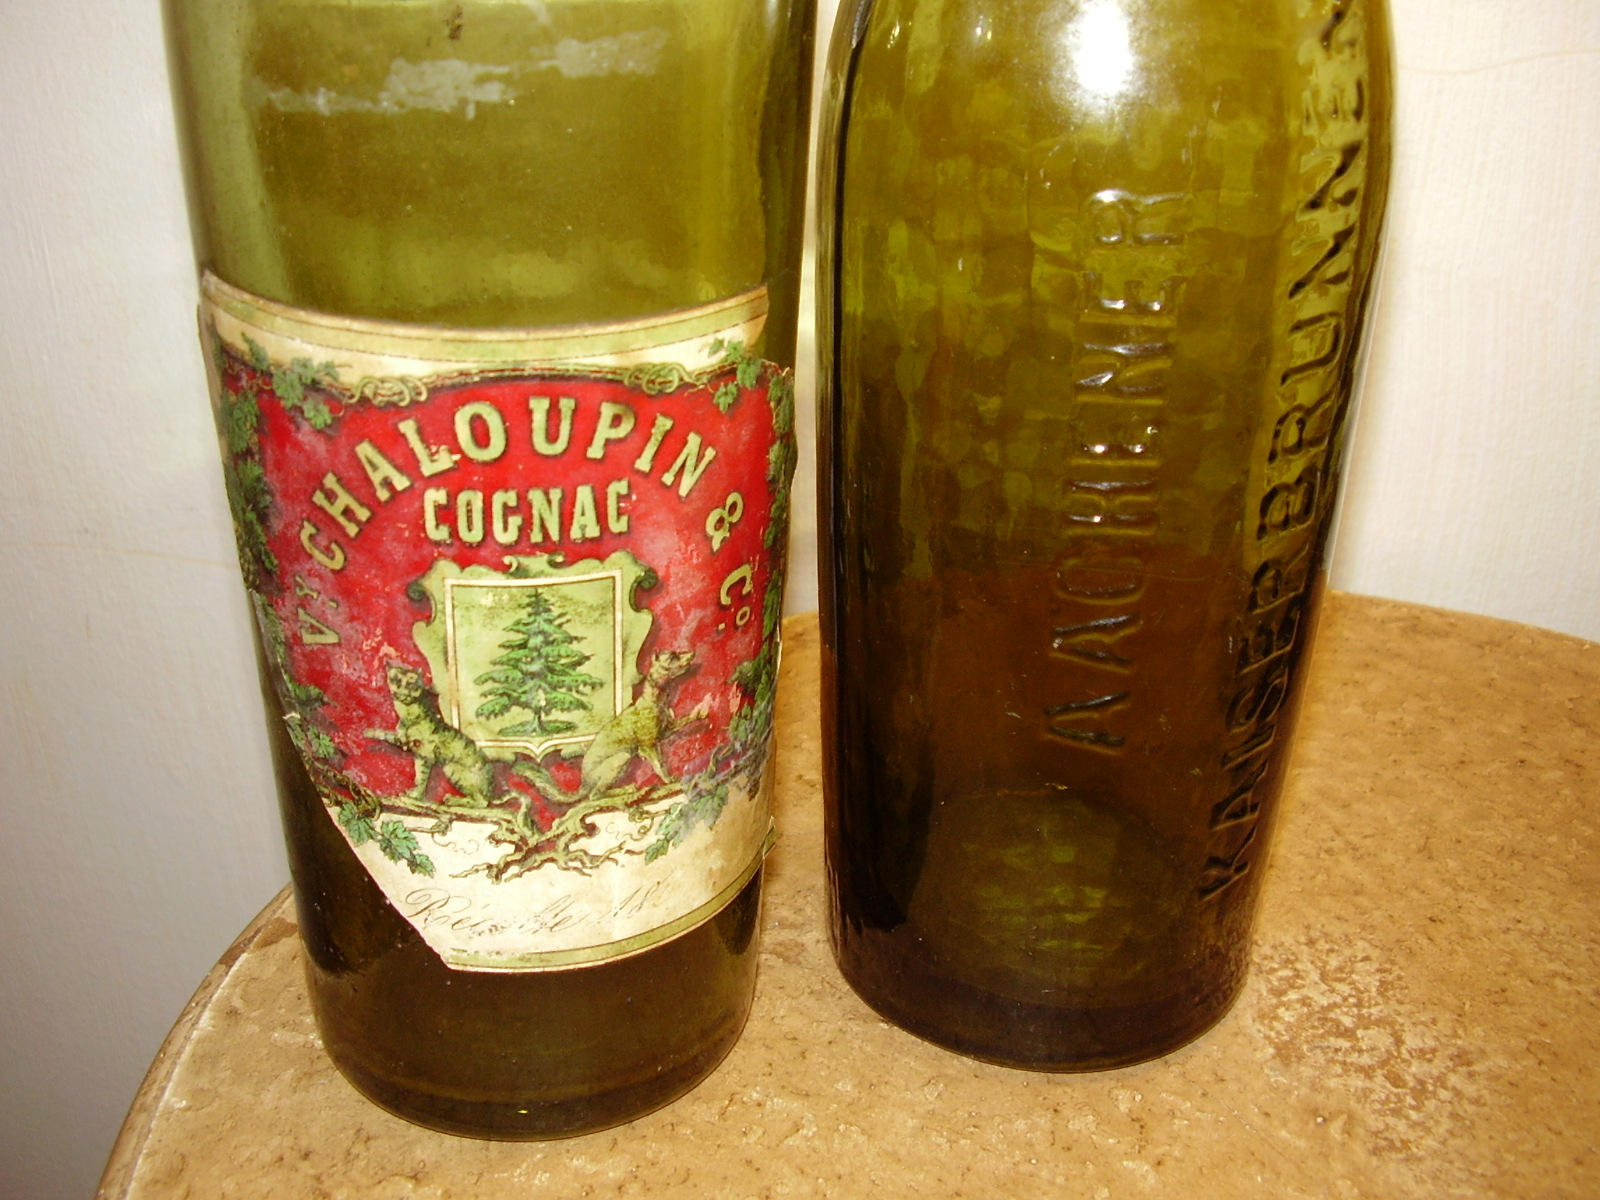 1800 Chaloupin Co Cognac bottle